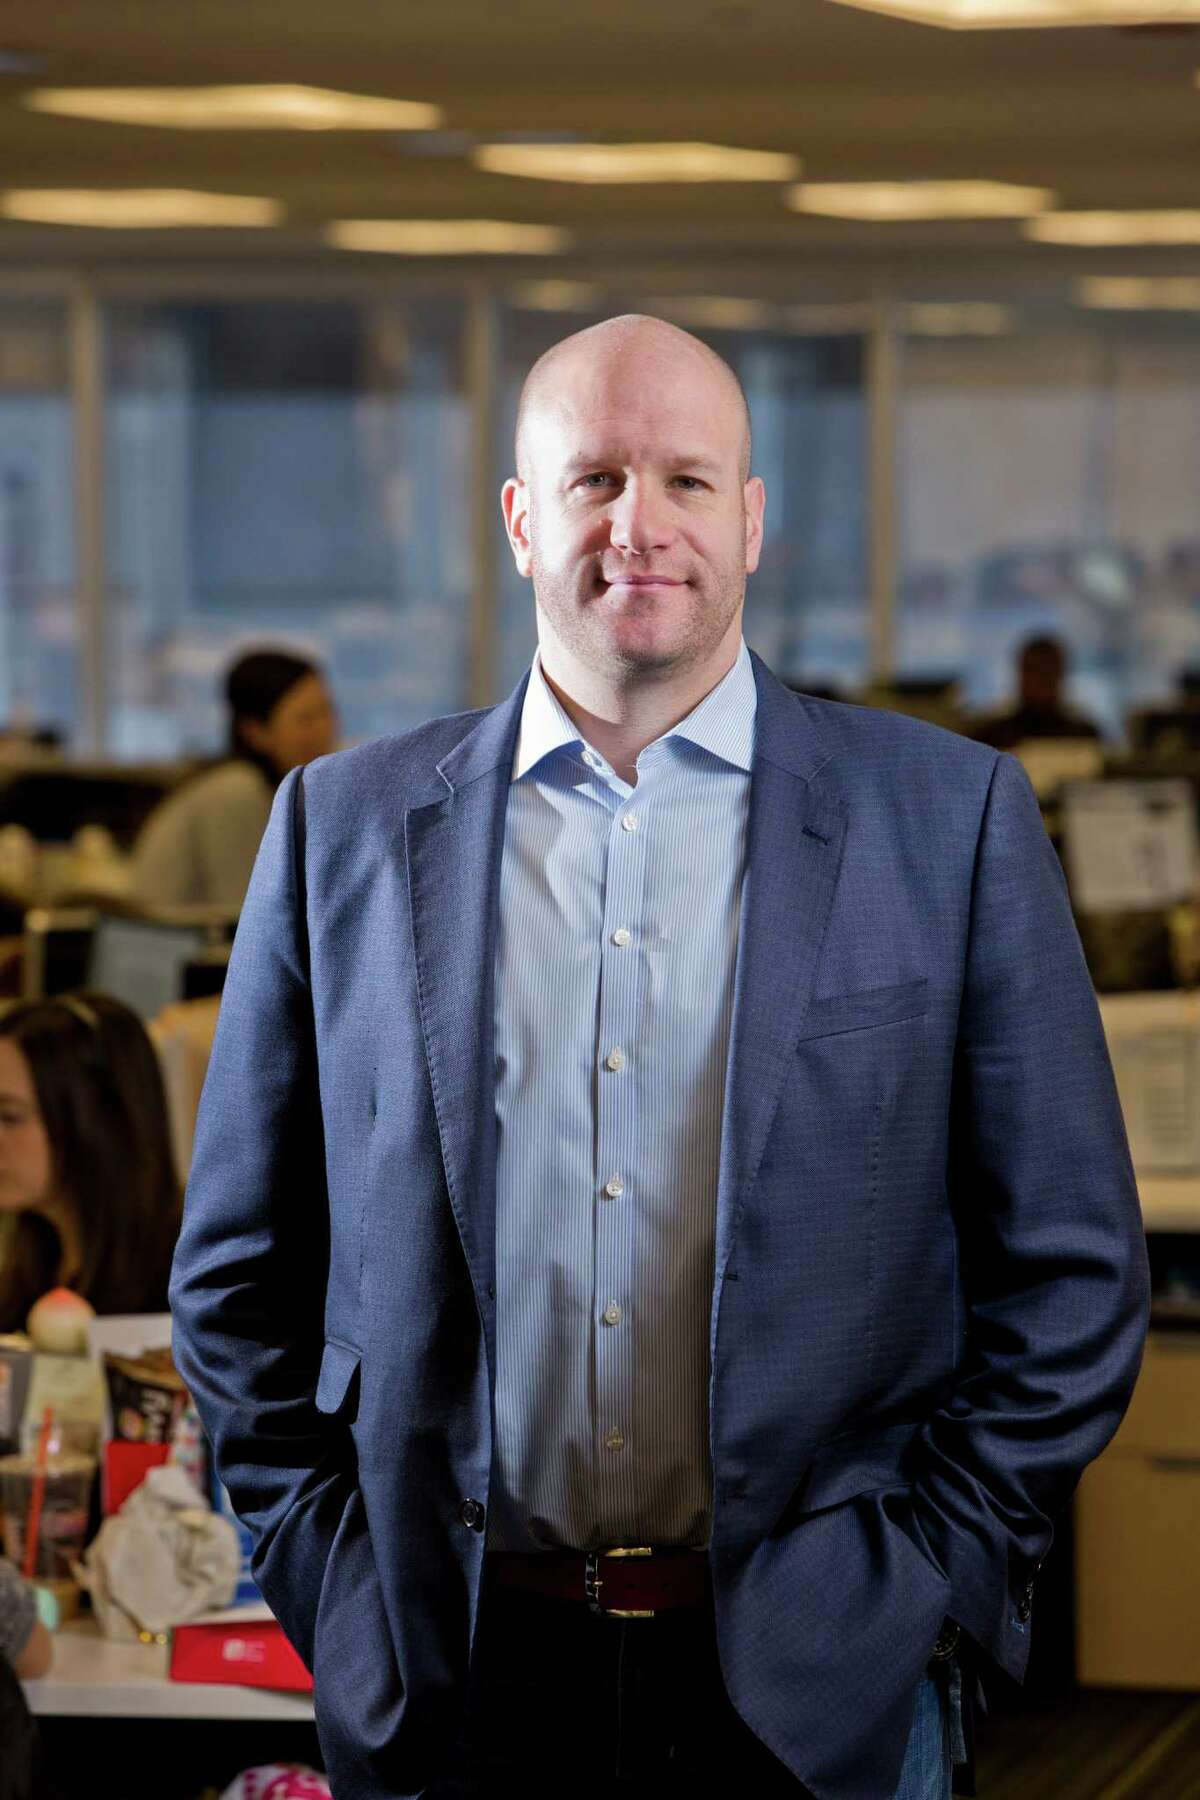 Tom Gimbel, chief executive of LaSalle Network, a Chicago recruiting and staffing firm, says salaries are rising in sectors in which experienced workers are harder to find, including technology, finance and higher-level accounting positions.